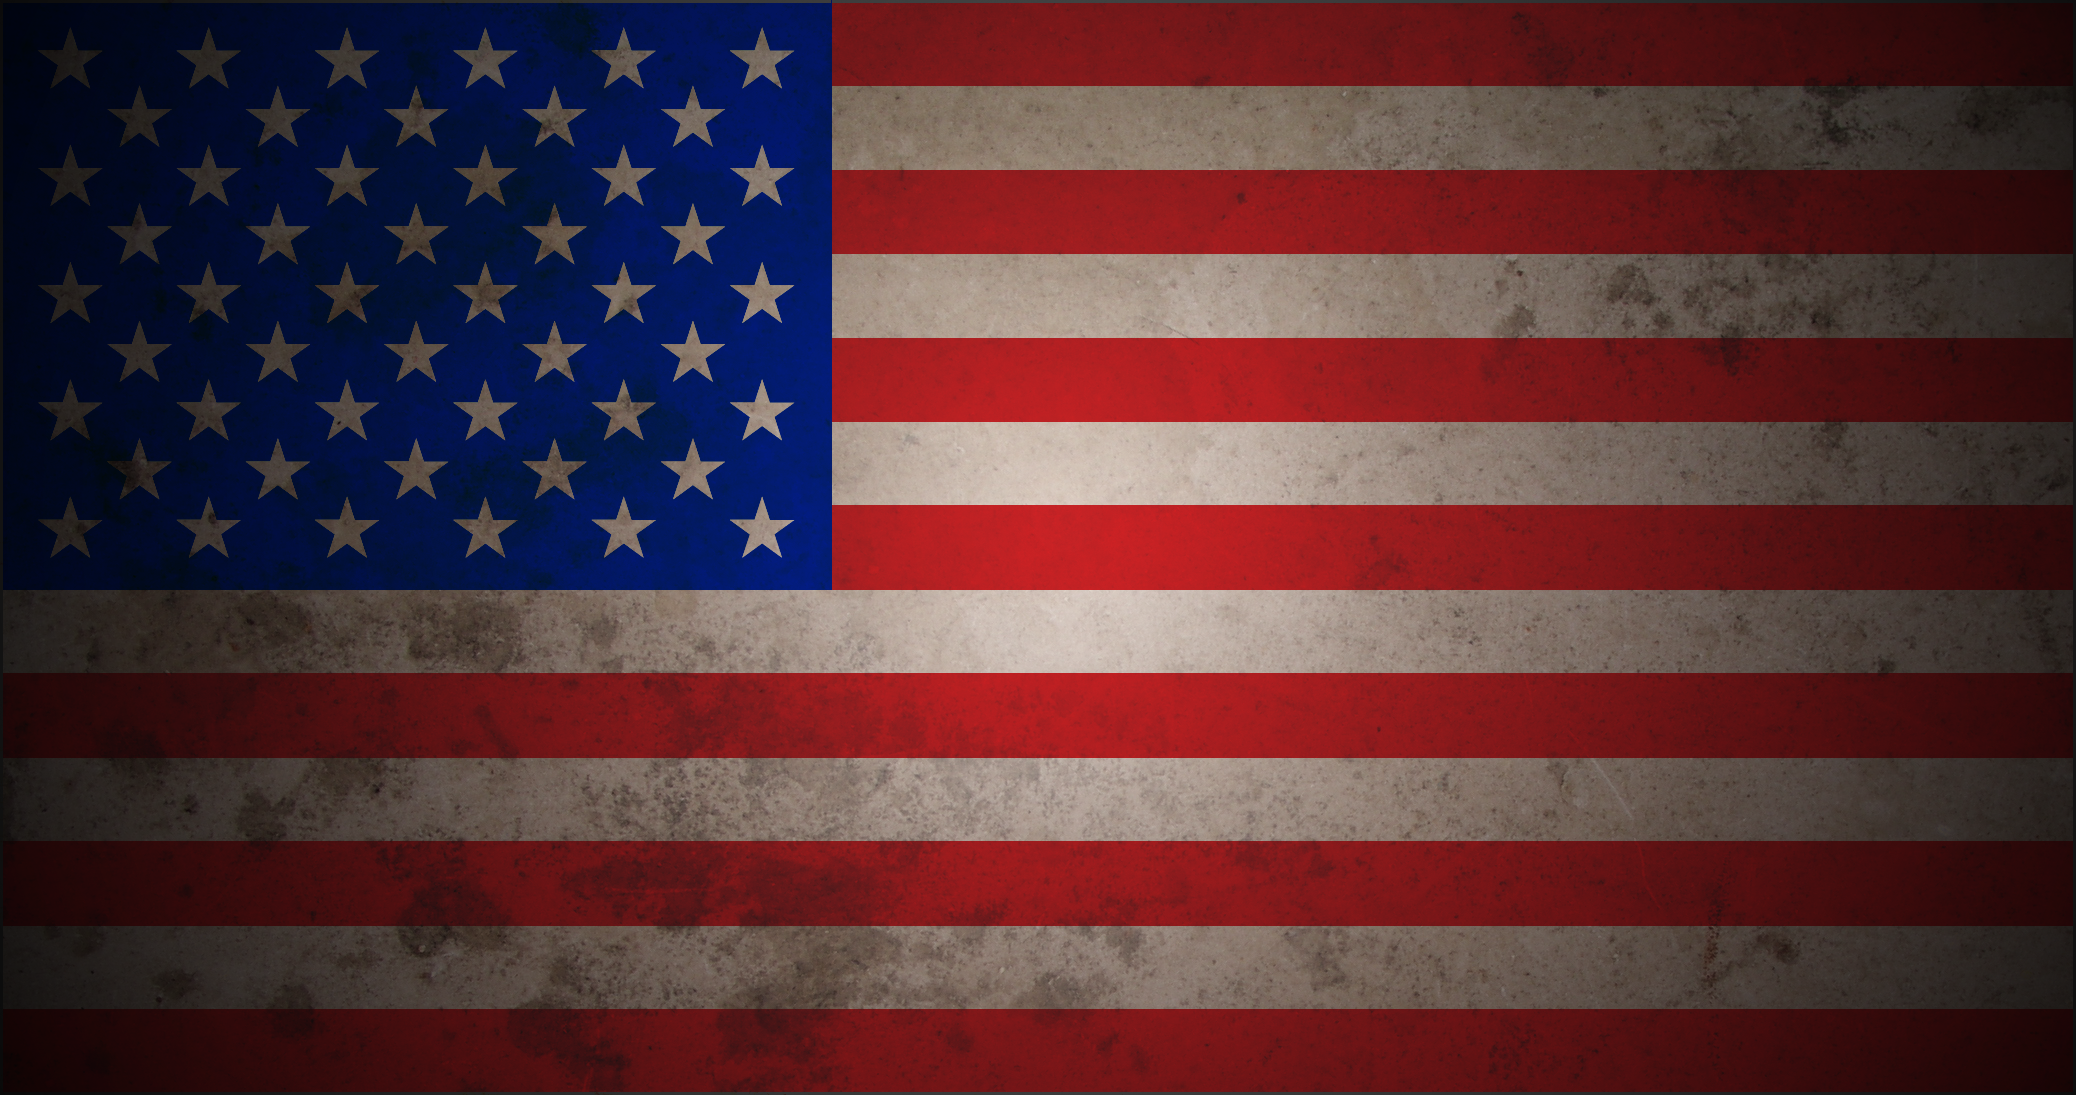 flags usa american flag desktop 2076x1095 hd wallpaper 157877 2076x1095